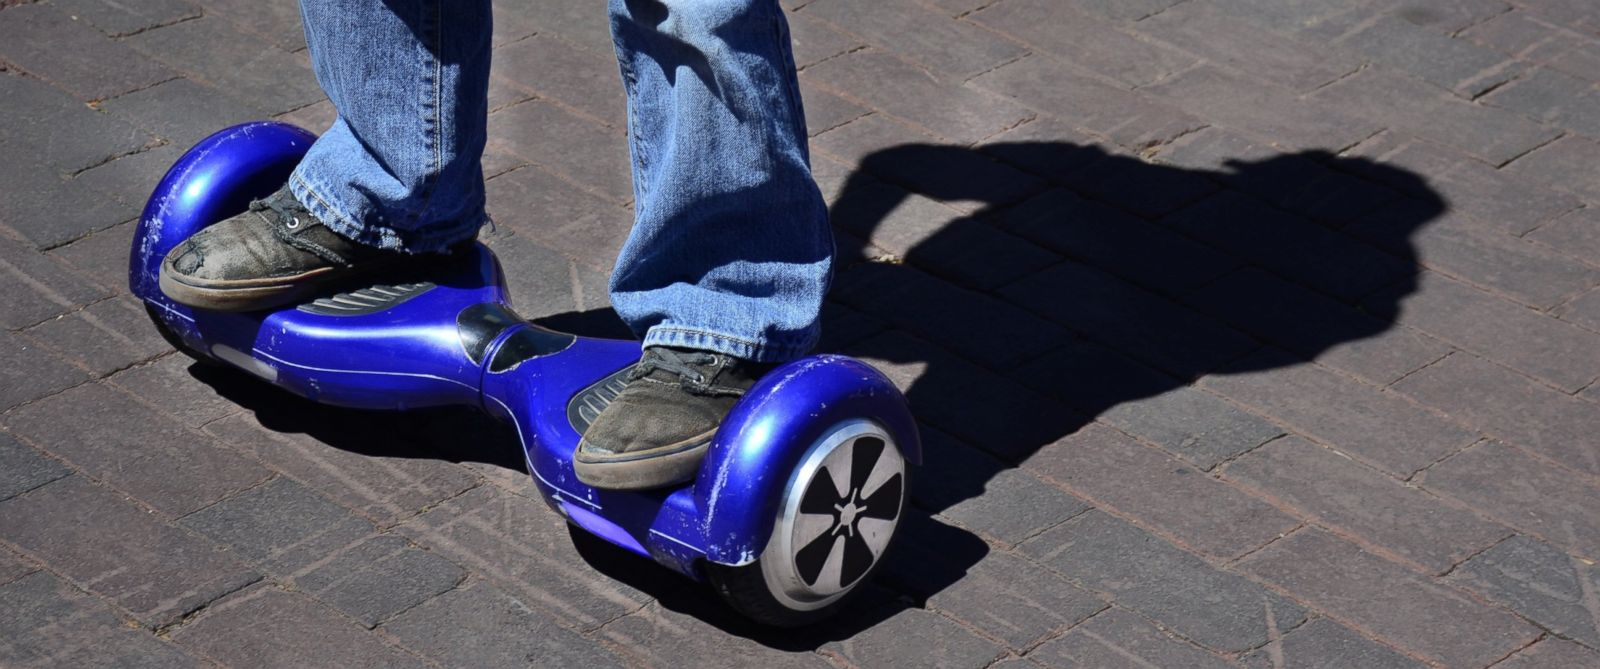 PHOTO: A boy rides his battery-operated hoverboard in Santa Fe, New Mexico on May 22, 2016.